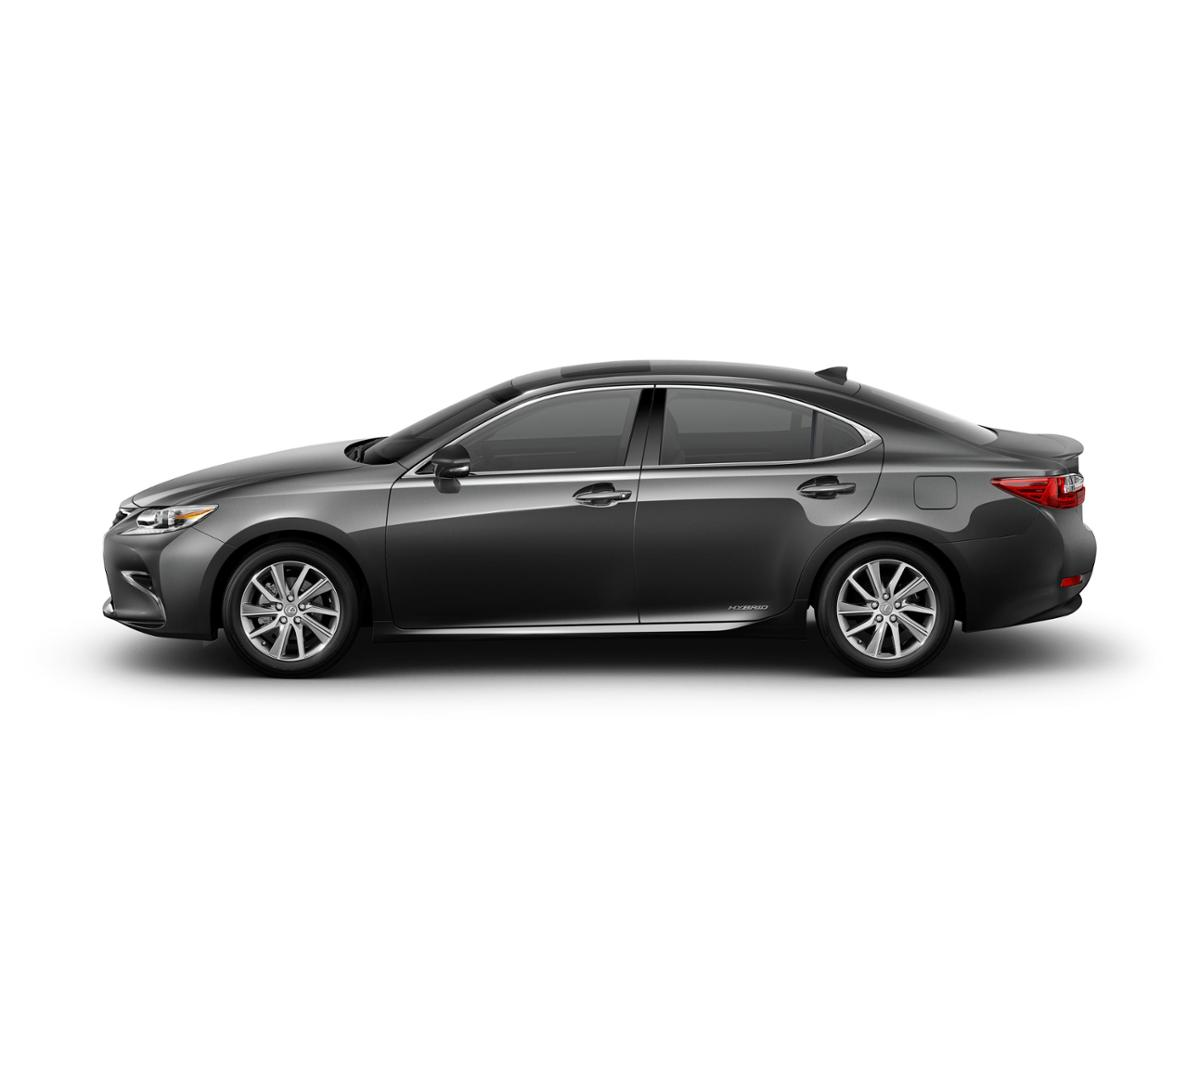 2018 Lexus ES 300h Vehicle Photo in Santa Barbara, CA 93105